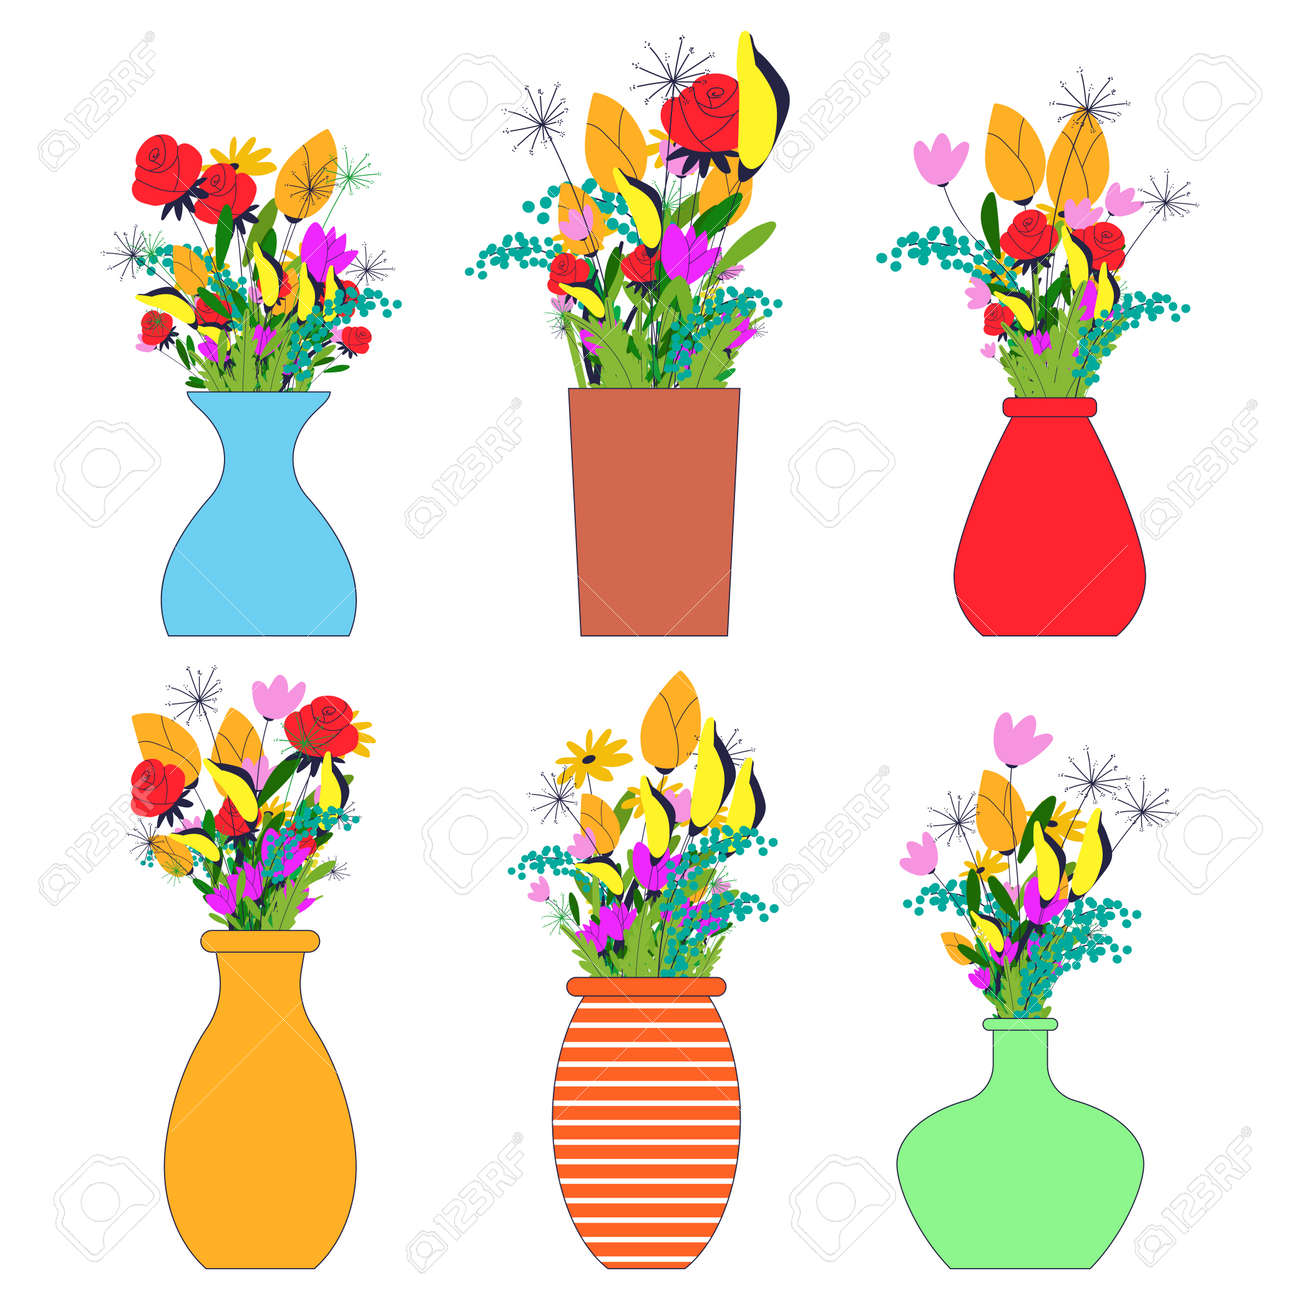 Flowers bouquets in vases vector flat set isolated on a white background. - 170643187